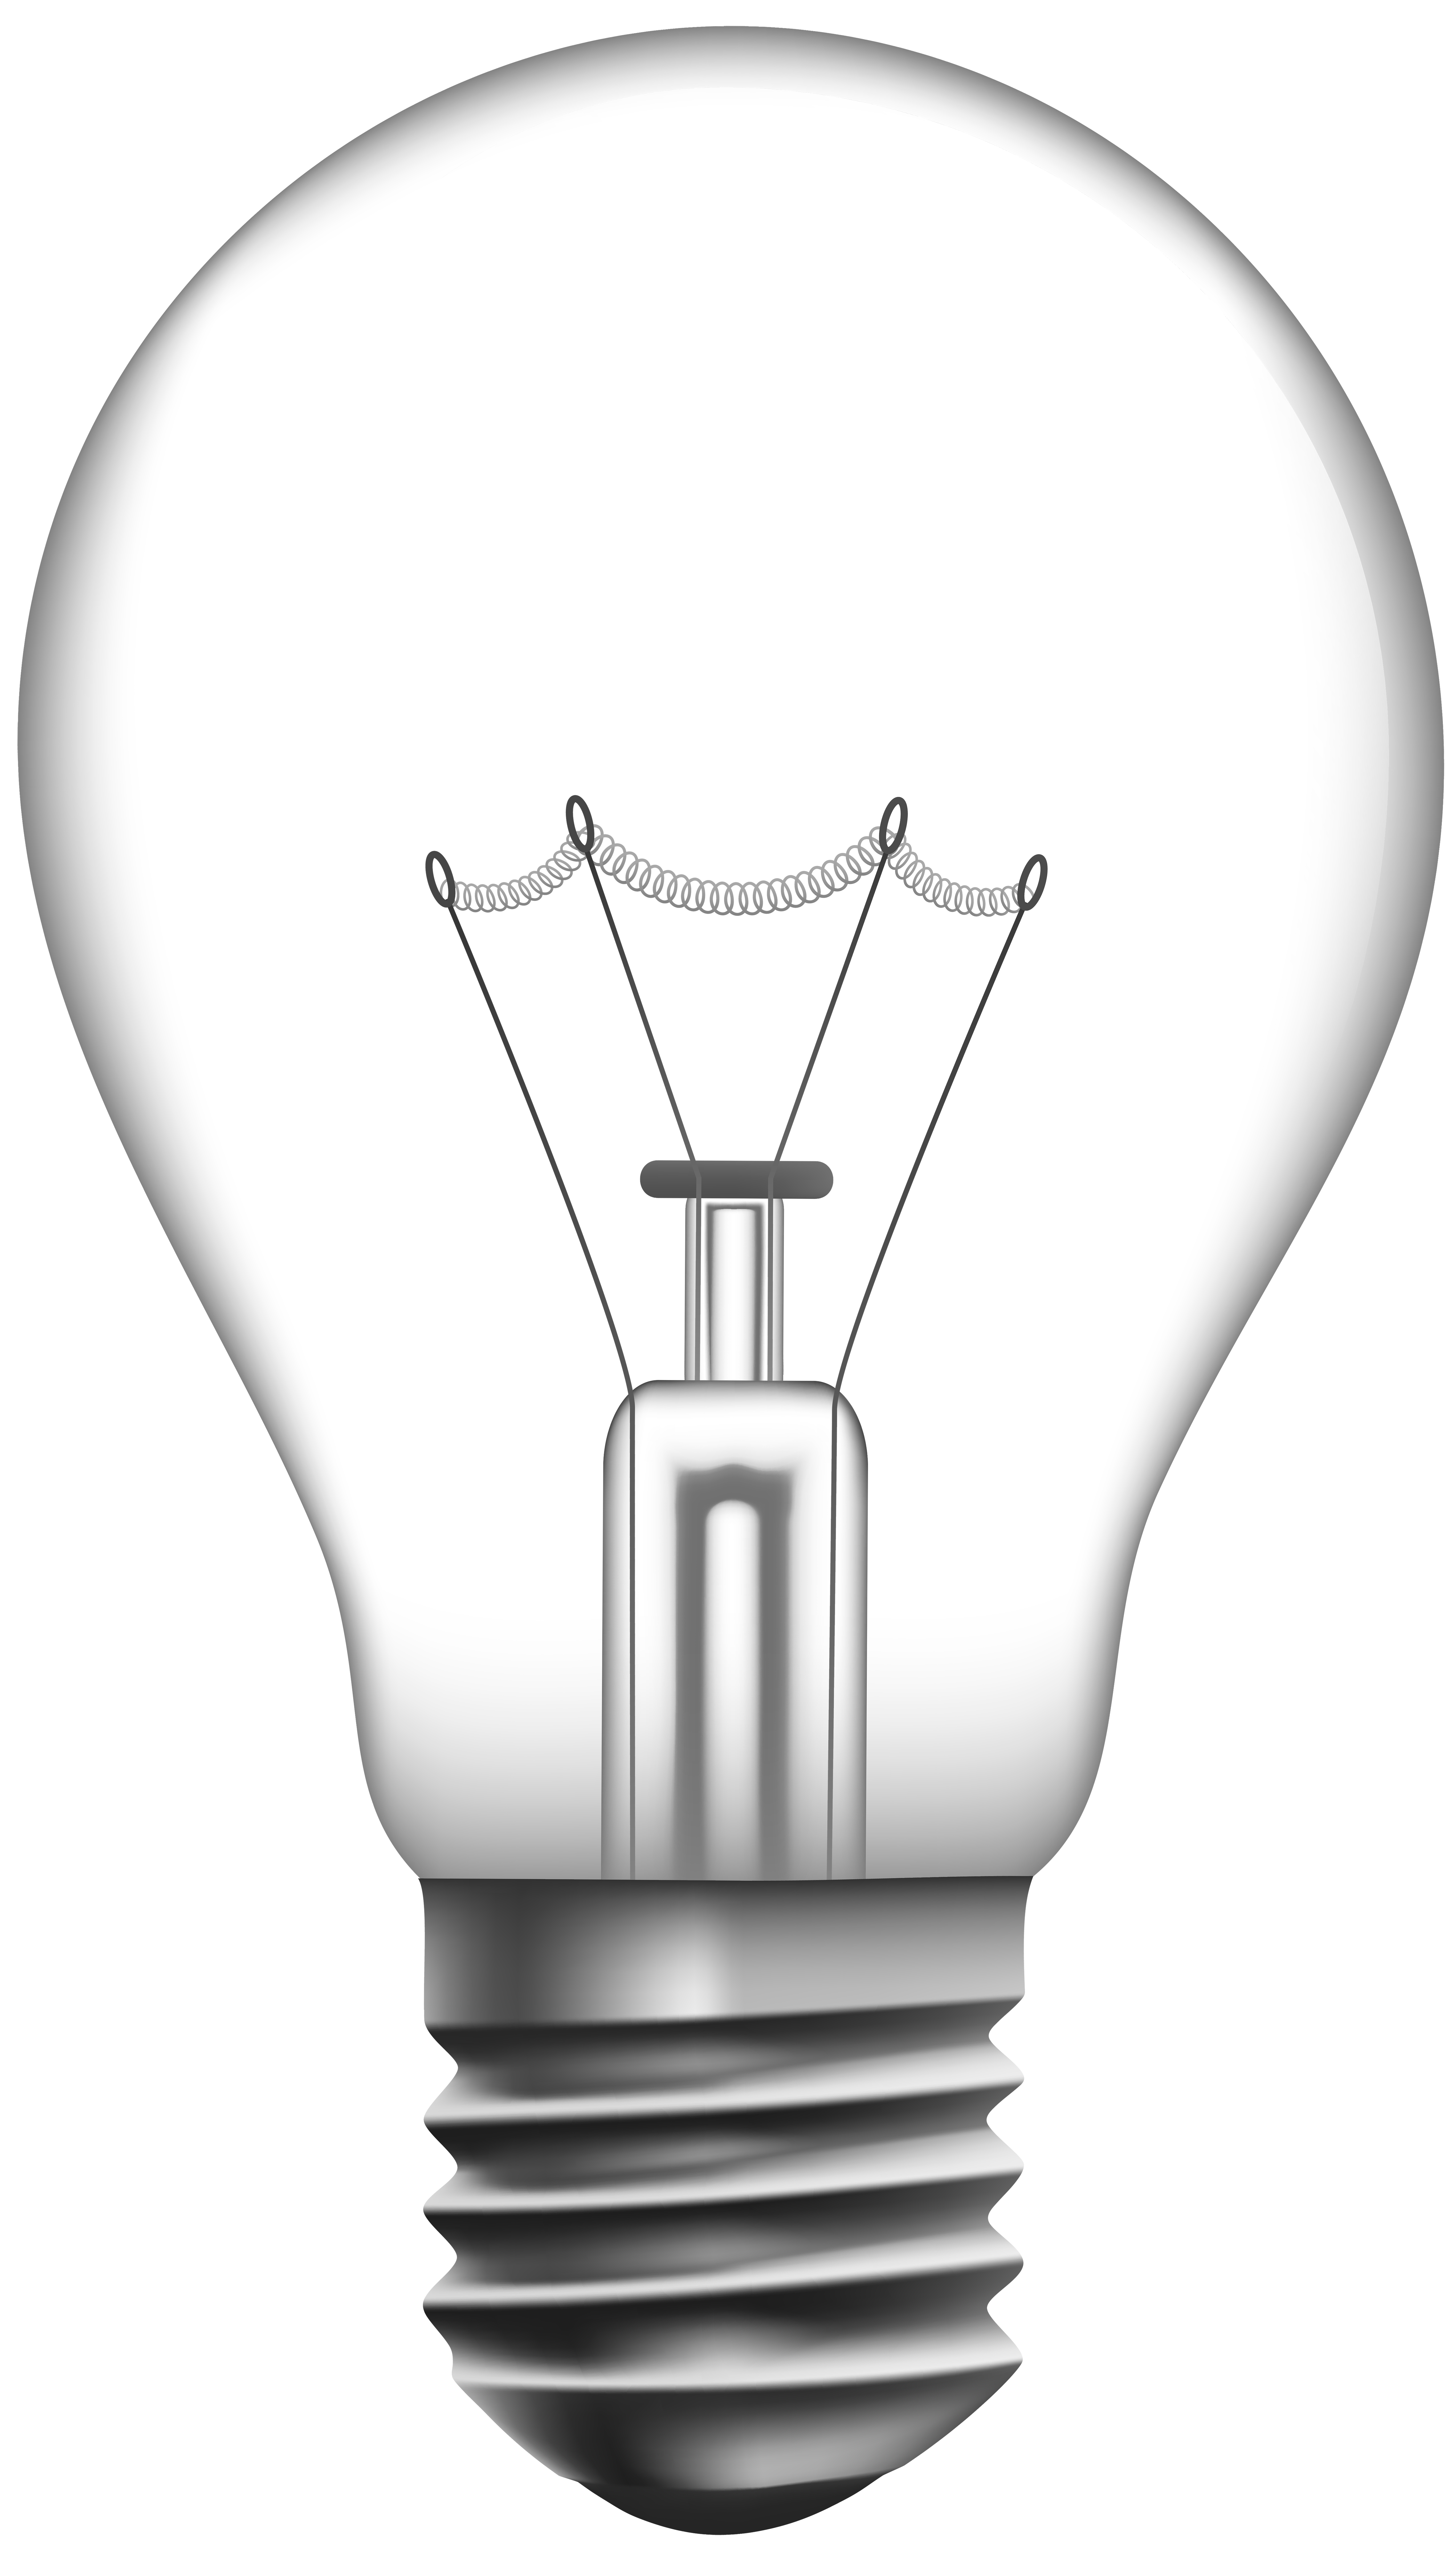 pin Light clipart simple #14 - PNG Light Bulb